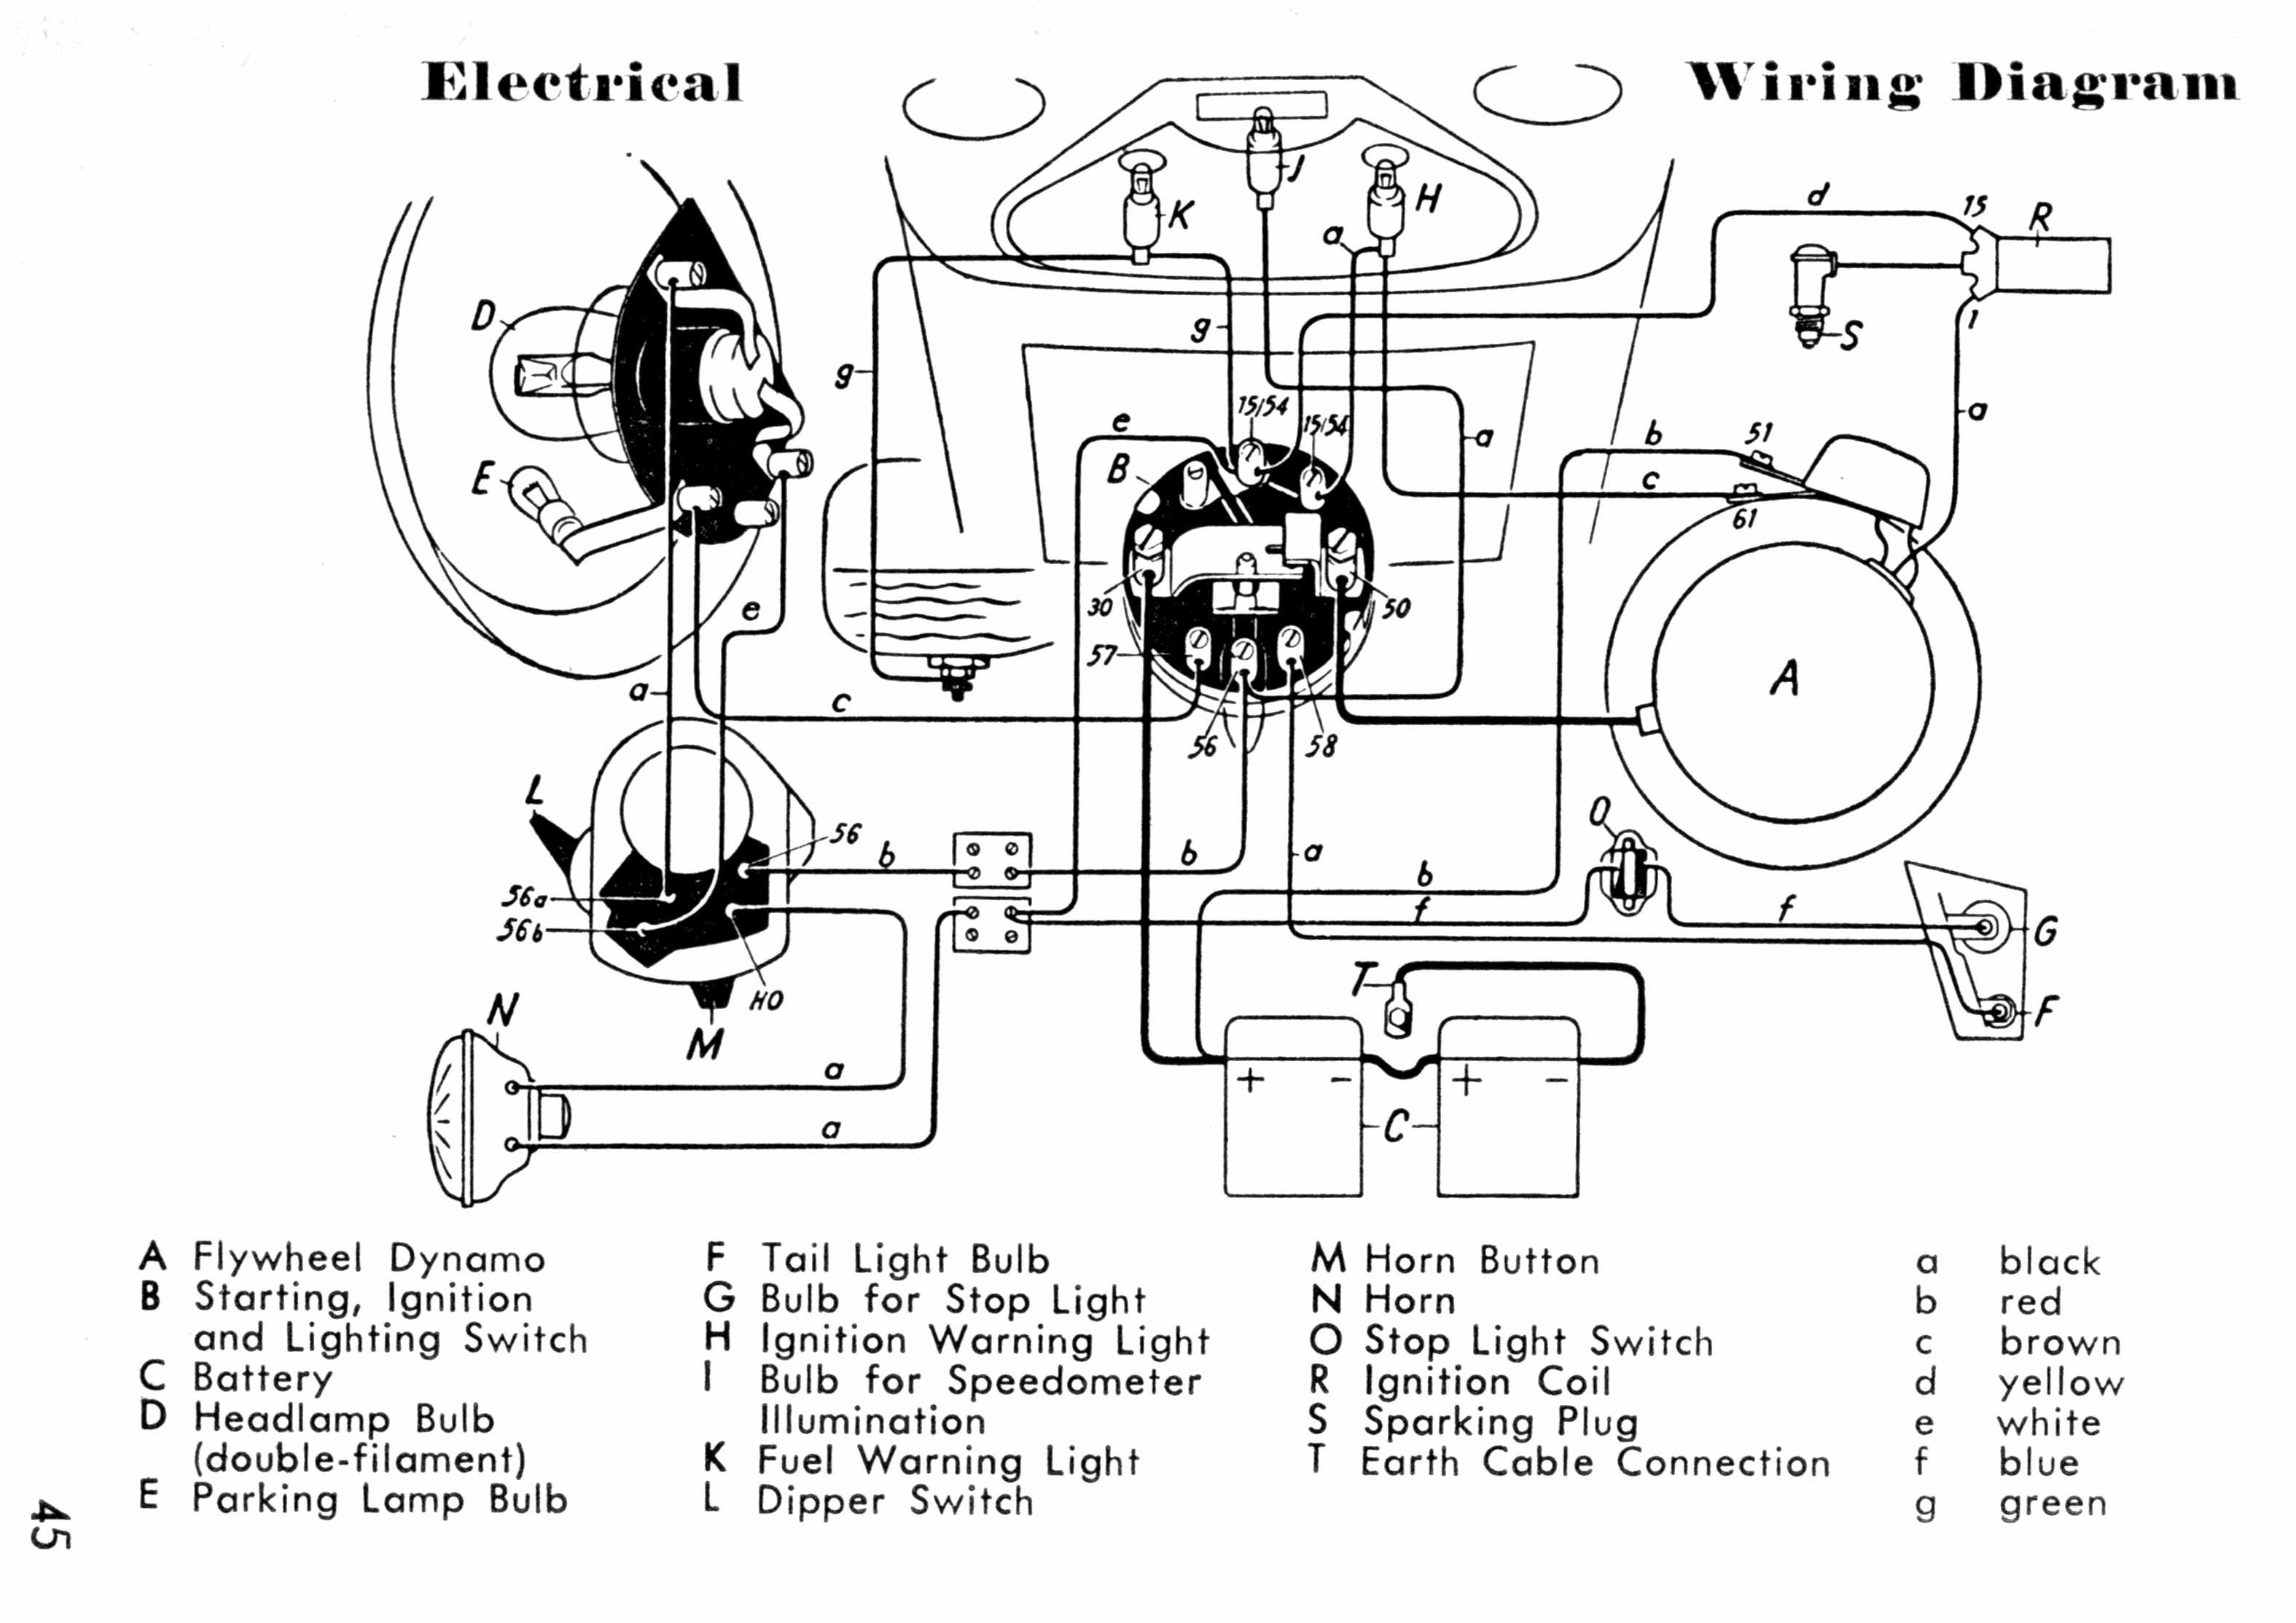 Wiring Diagram Likewise Chinese Scooter Further Honda Automotive Library Rh 2 Evitta De C70